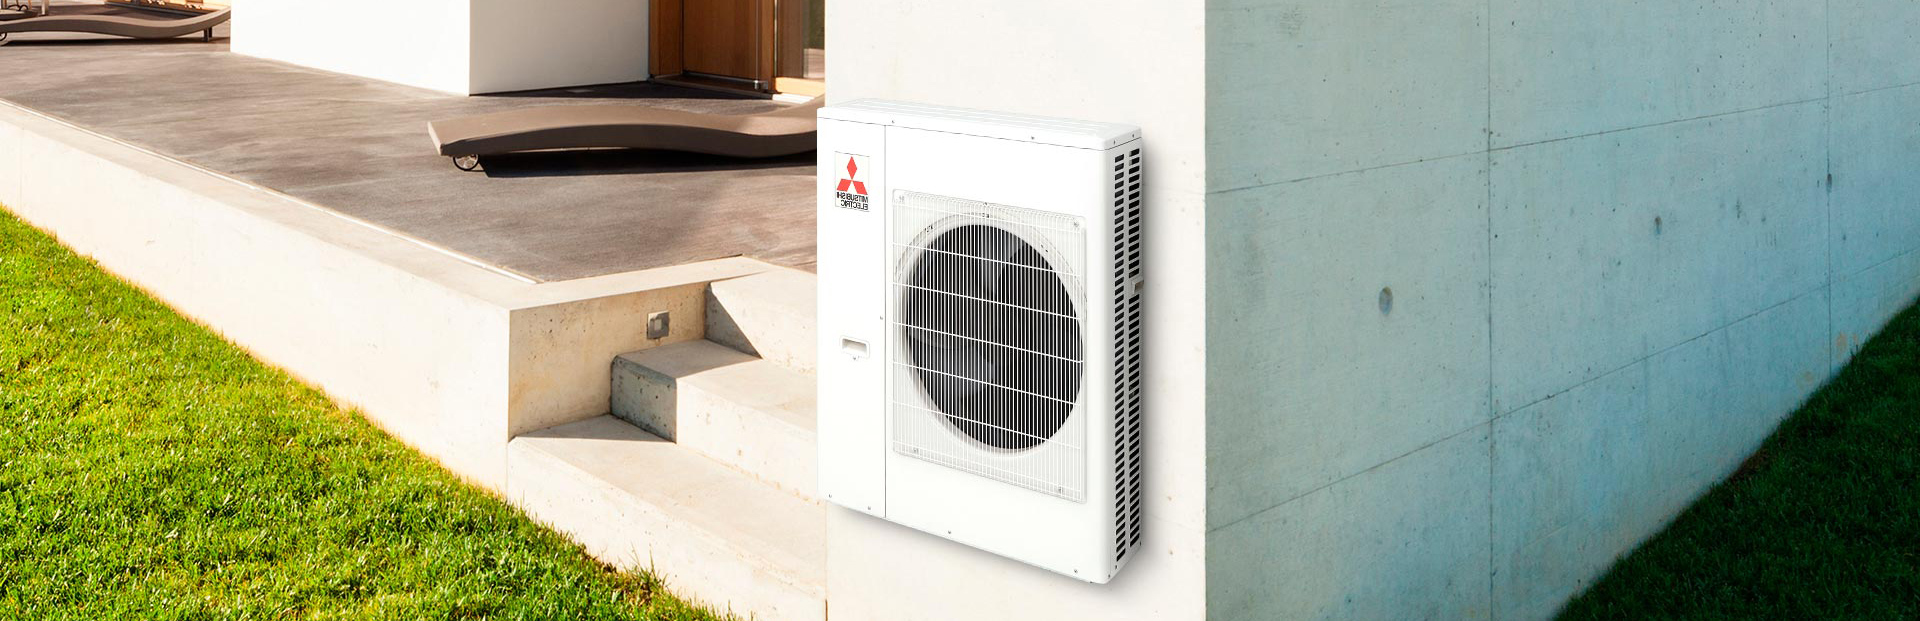 Ventilation and heating systems